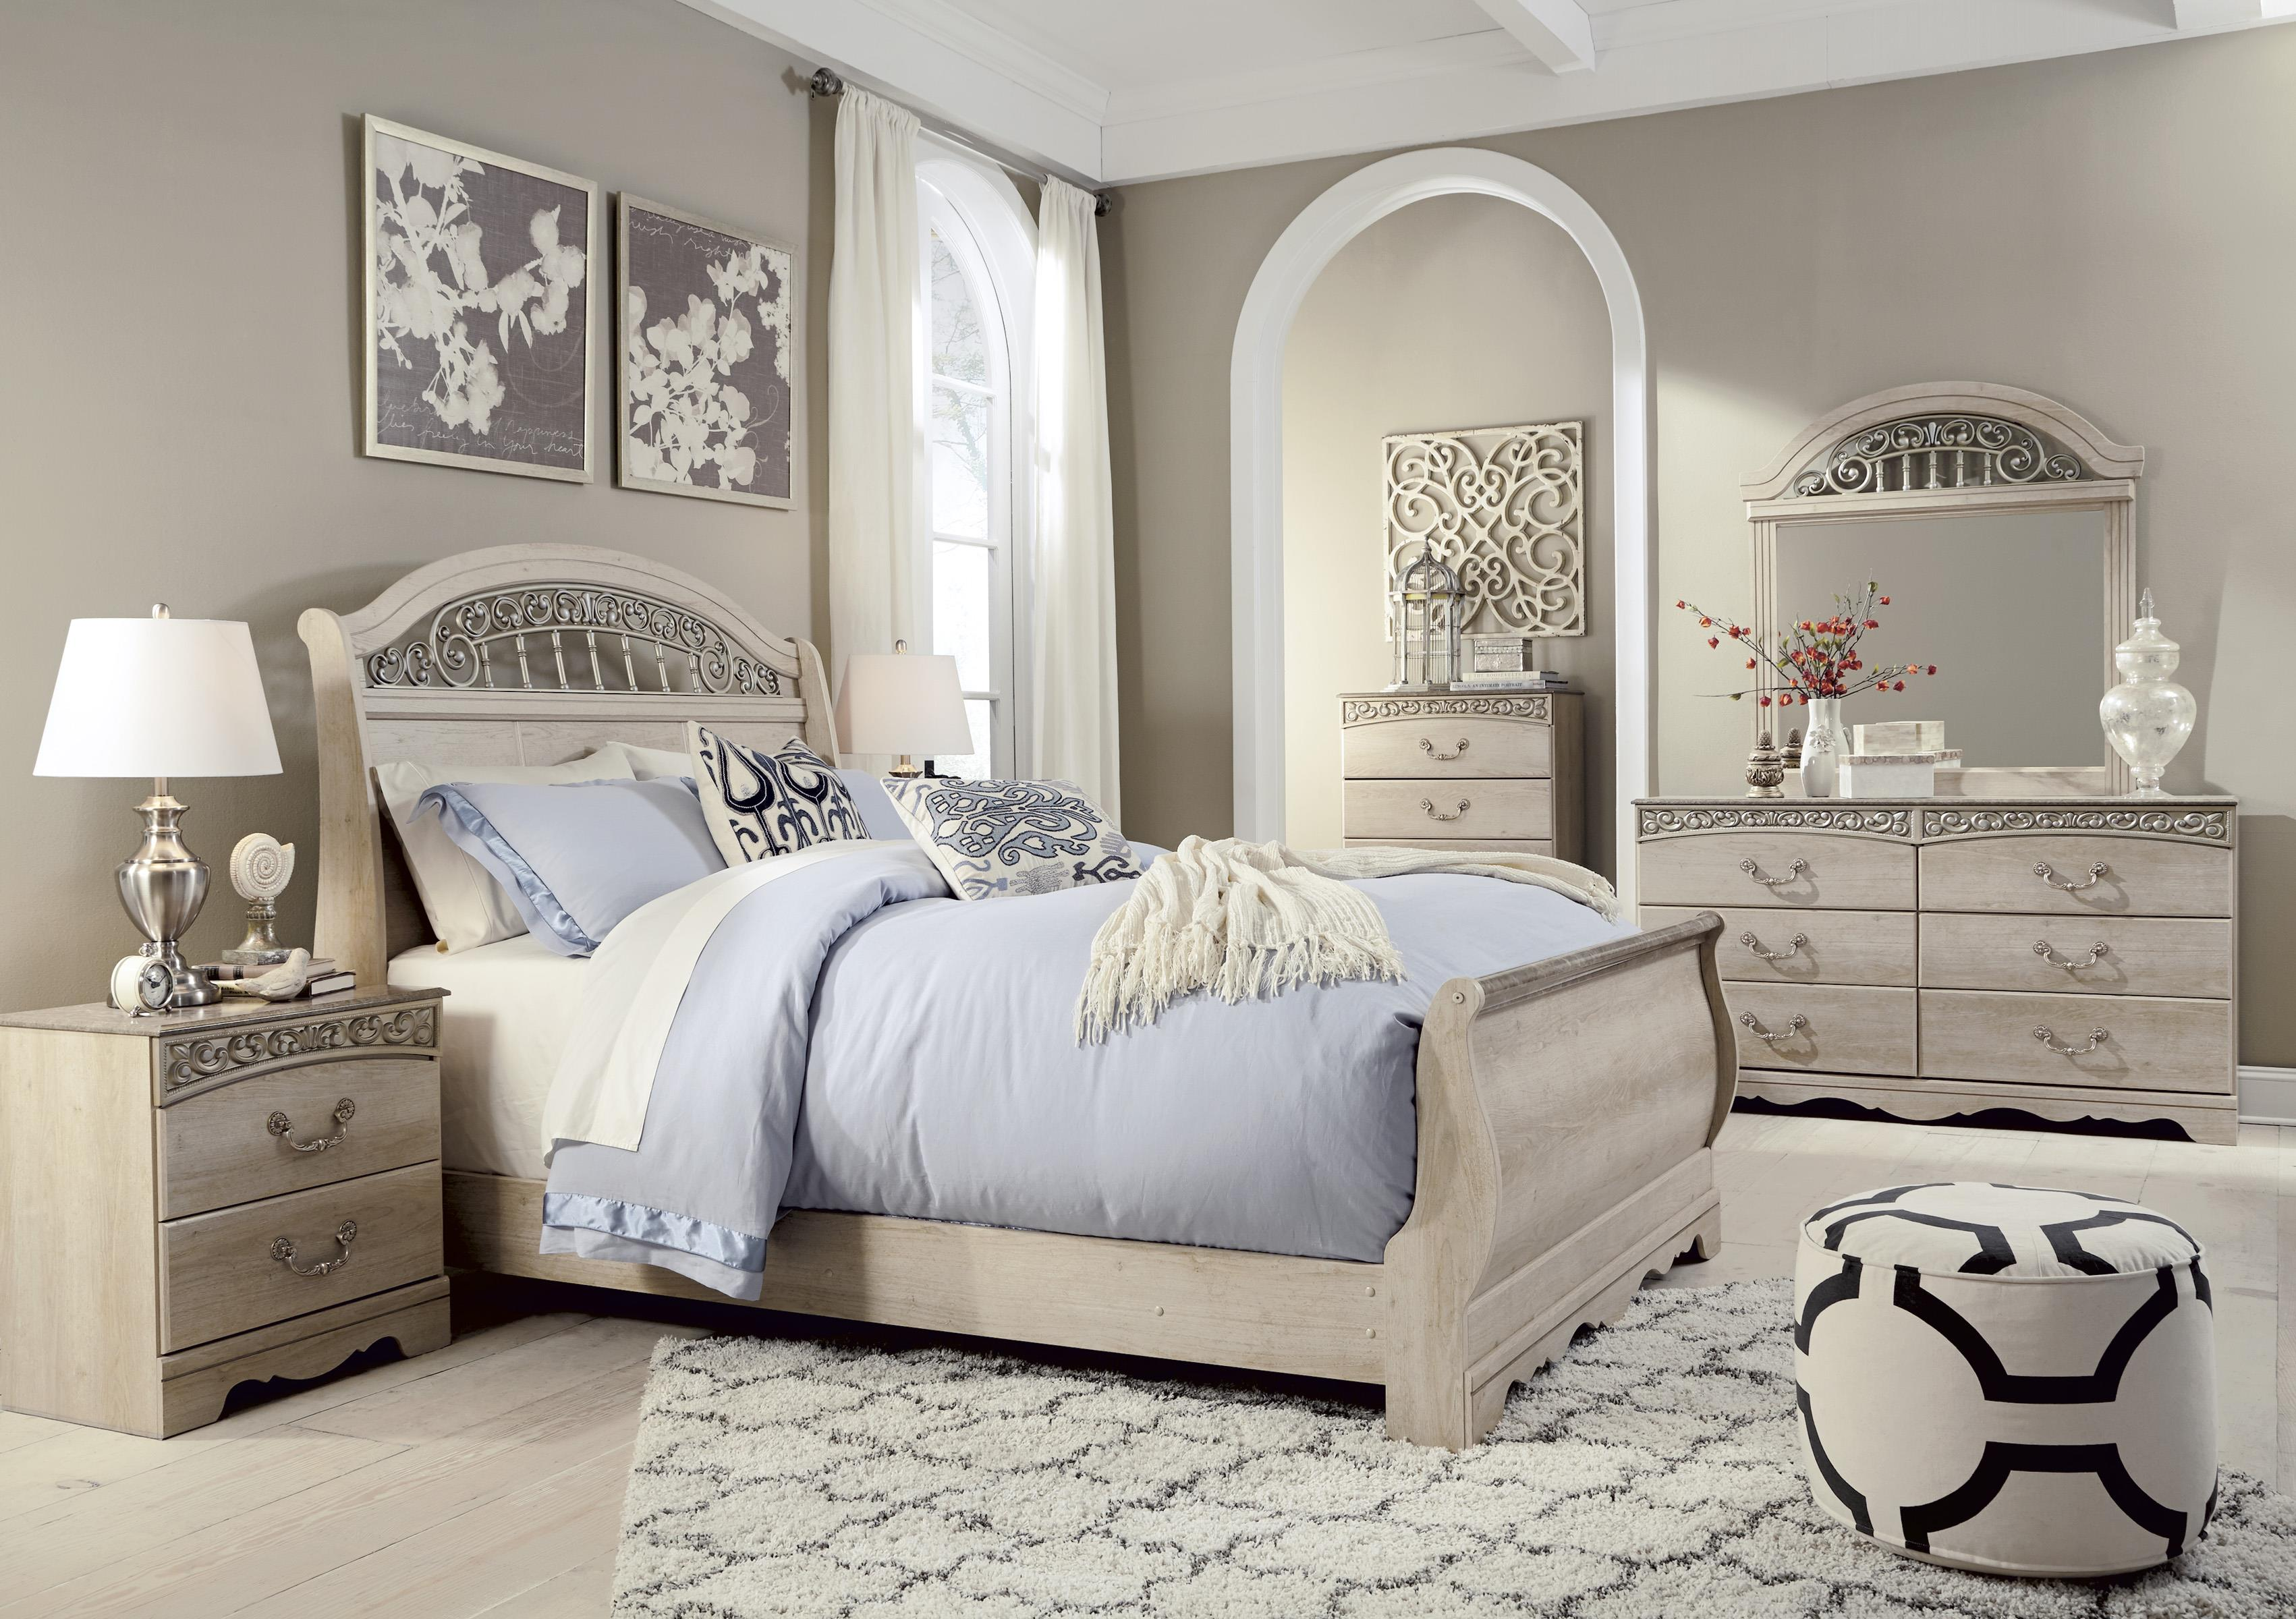 Signature Design by Ashley Catalina Queen Bedroom Group - Item Number: B196 Q Bedroom Group 3